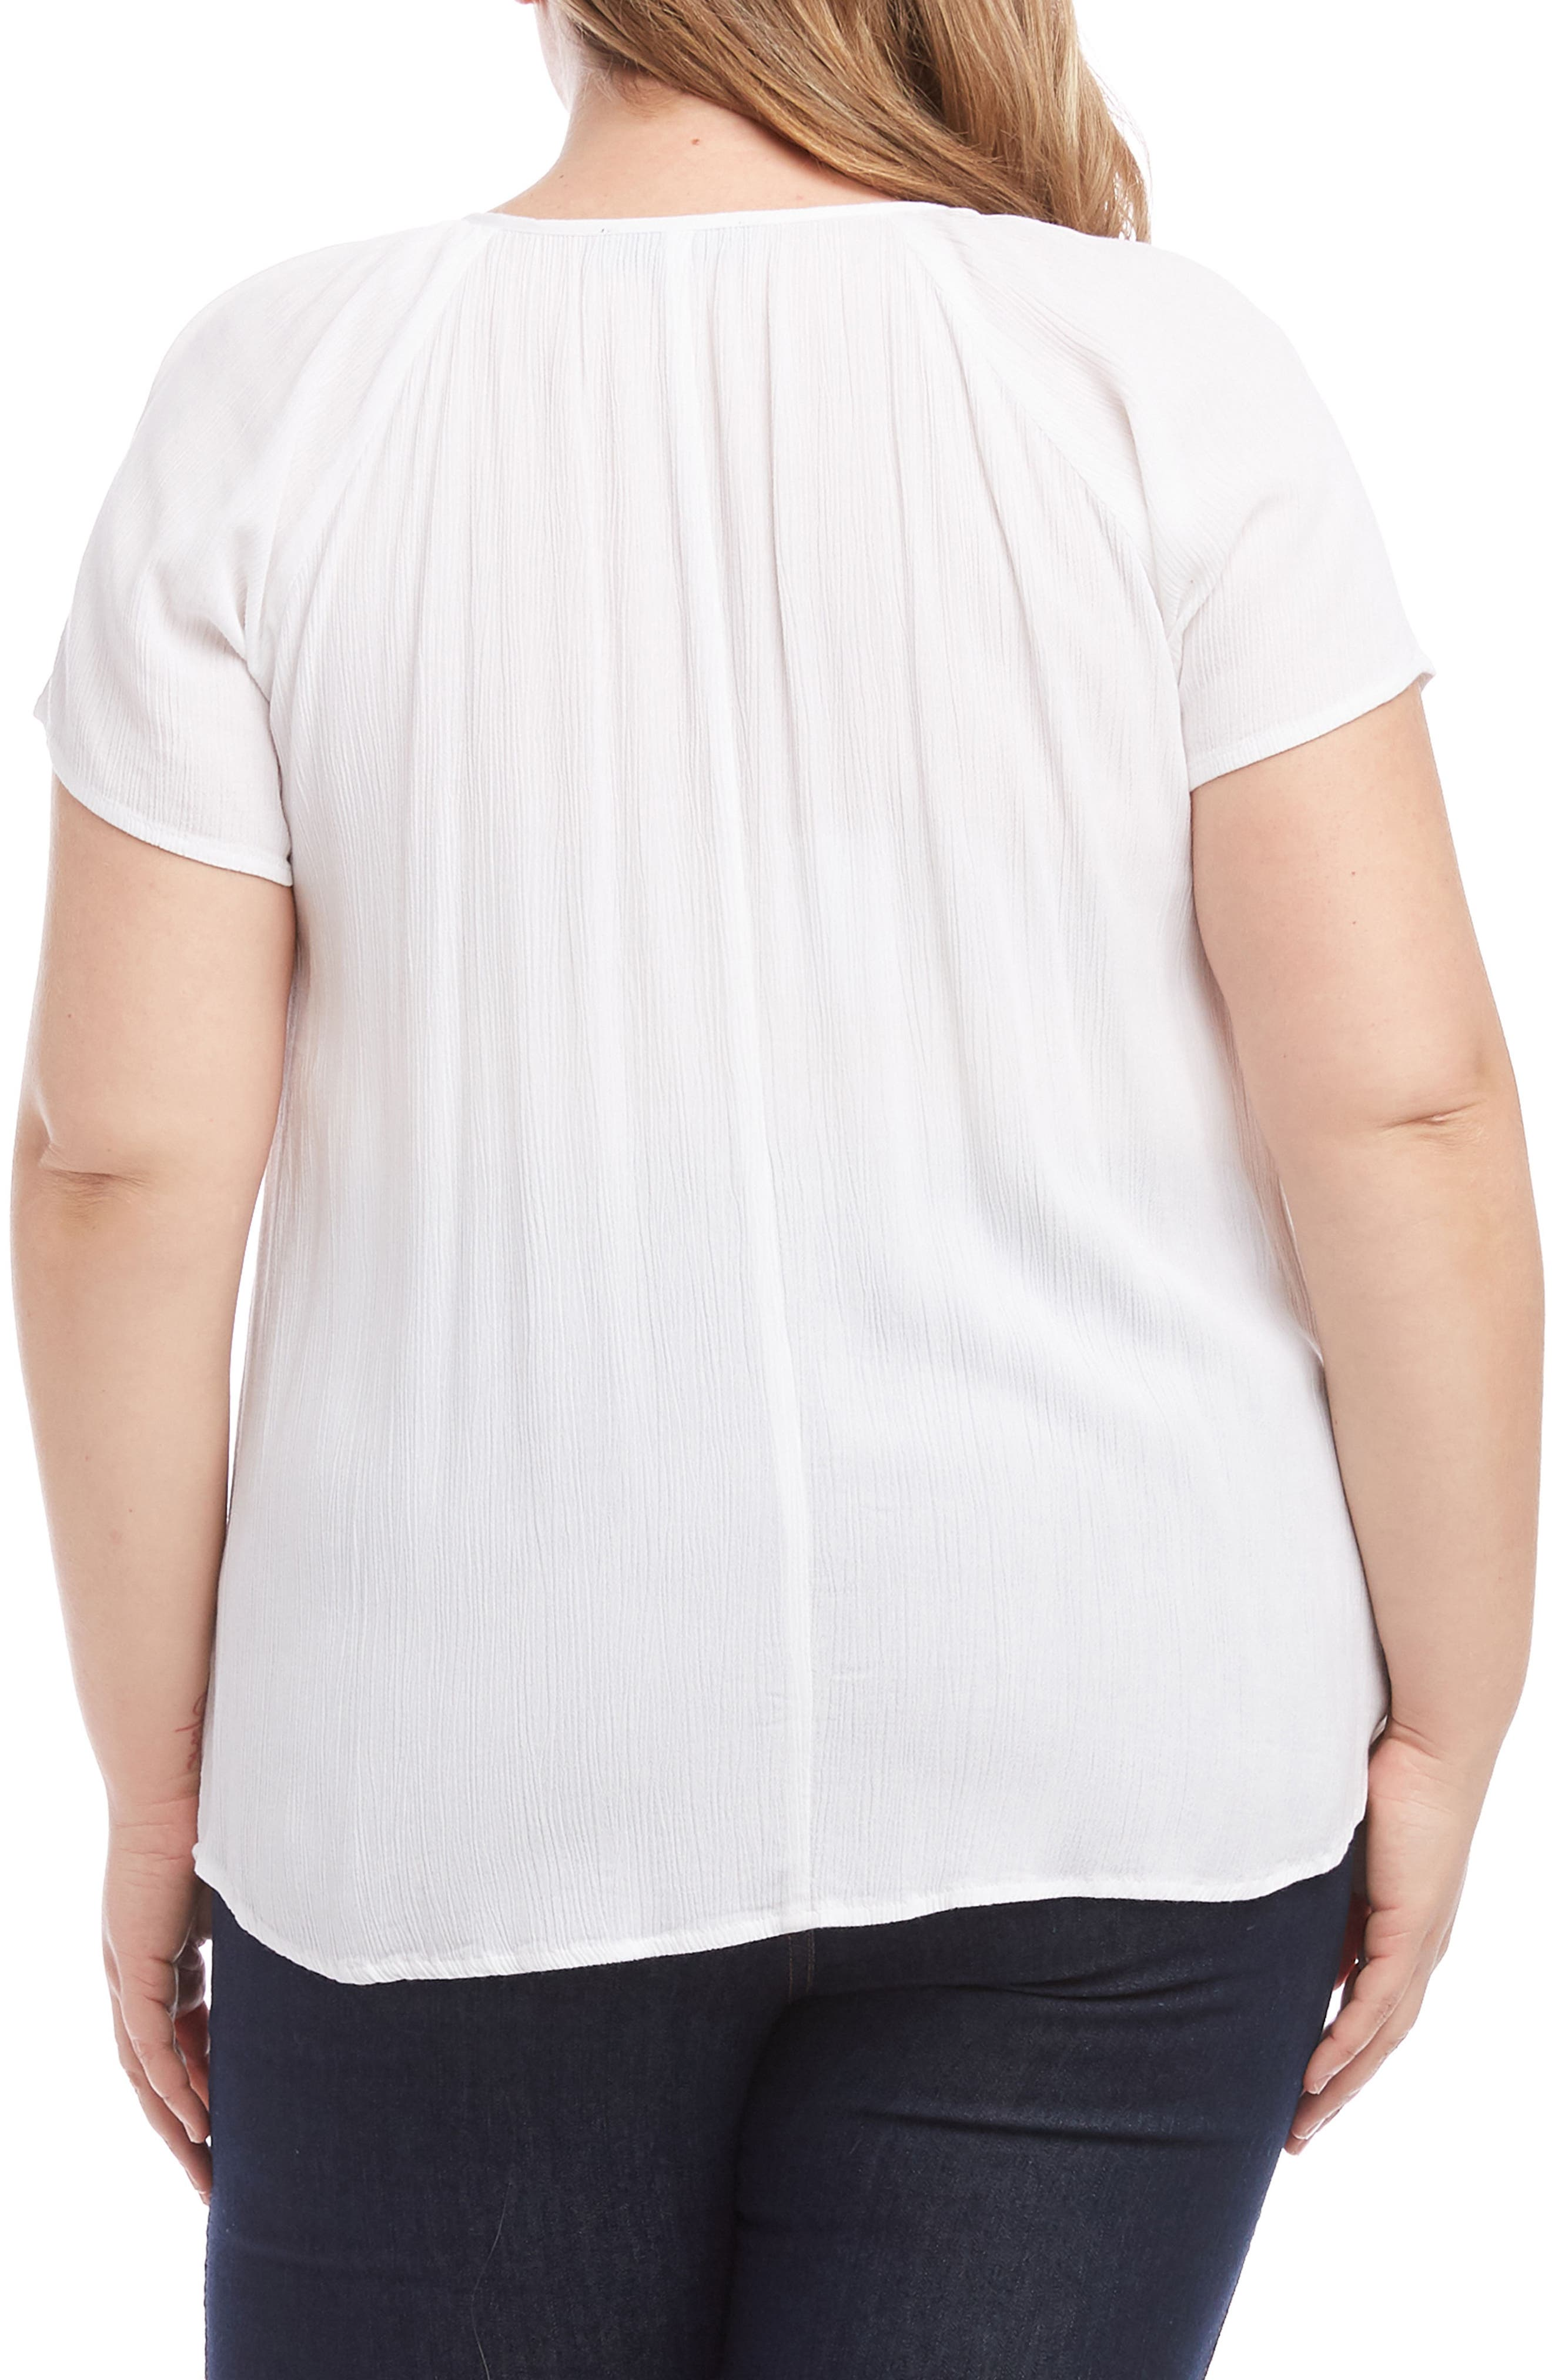 KAREN KANE, Embroidered Peasant Top, Alternate thumbnail 2, color, OFF WHITE WITH BLACK